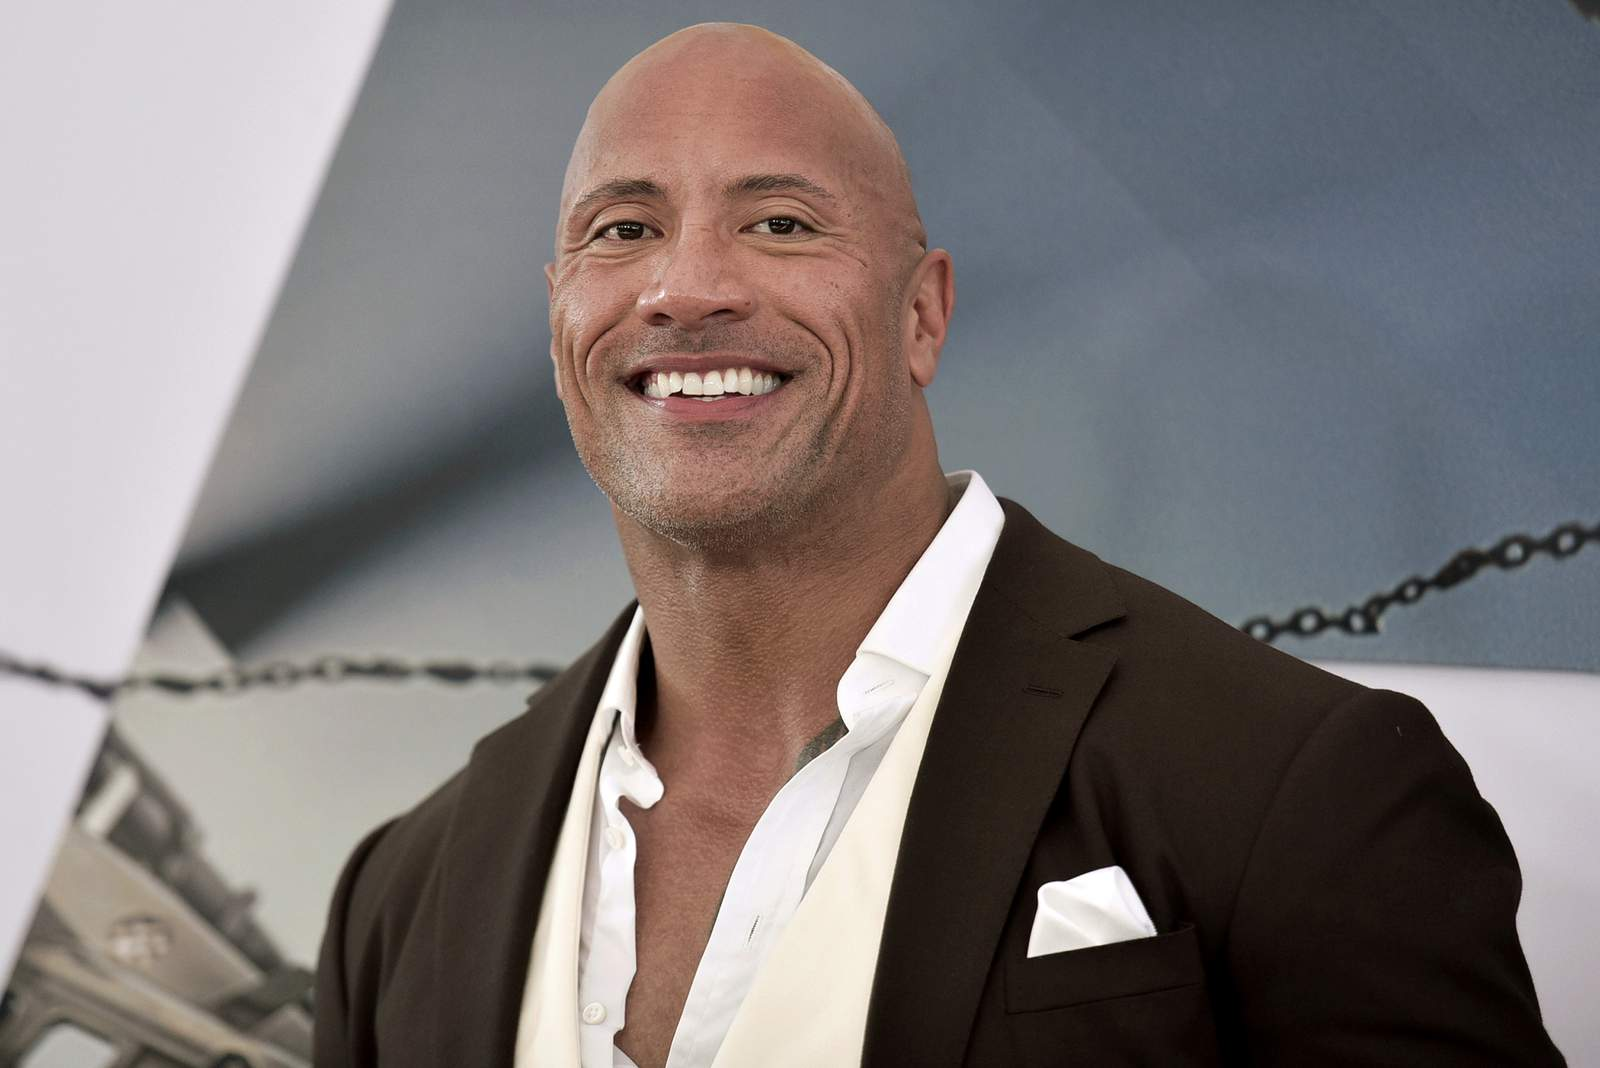 Dwayne 'The Rock' Johnson will pay for your guacamole if you order his tequila at a restaurant